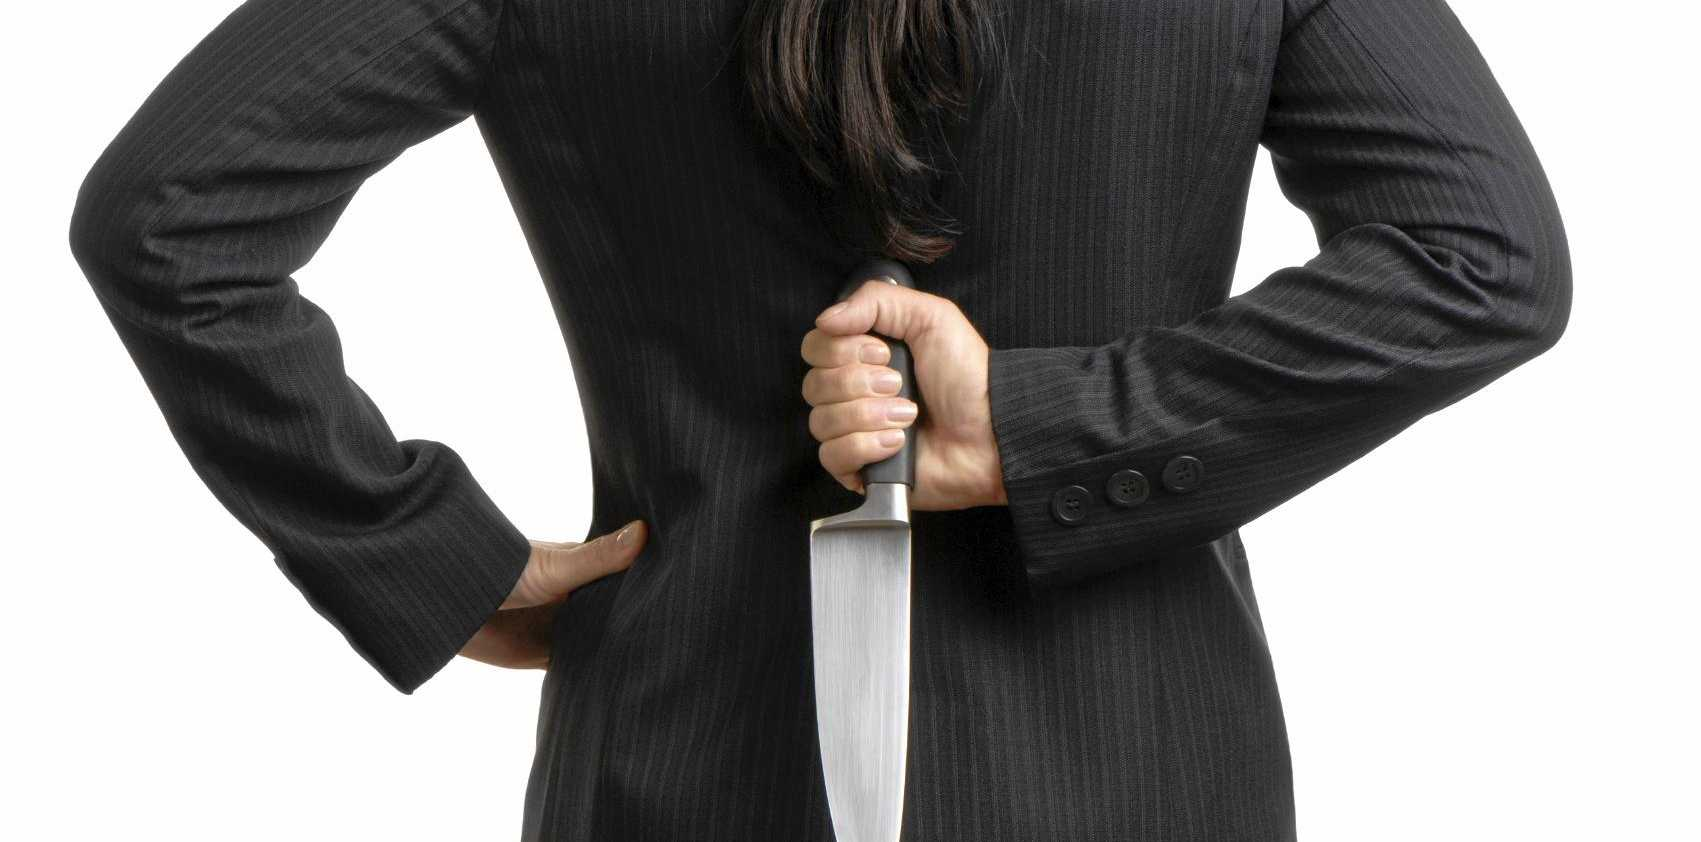 A woman threatened to cut her boyfriend's throat with a butcher's knife.